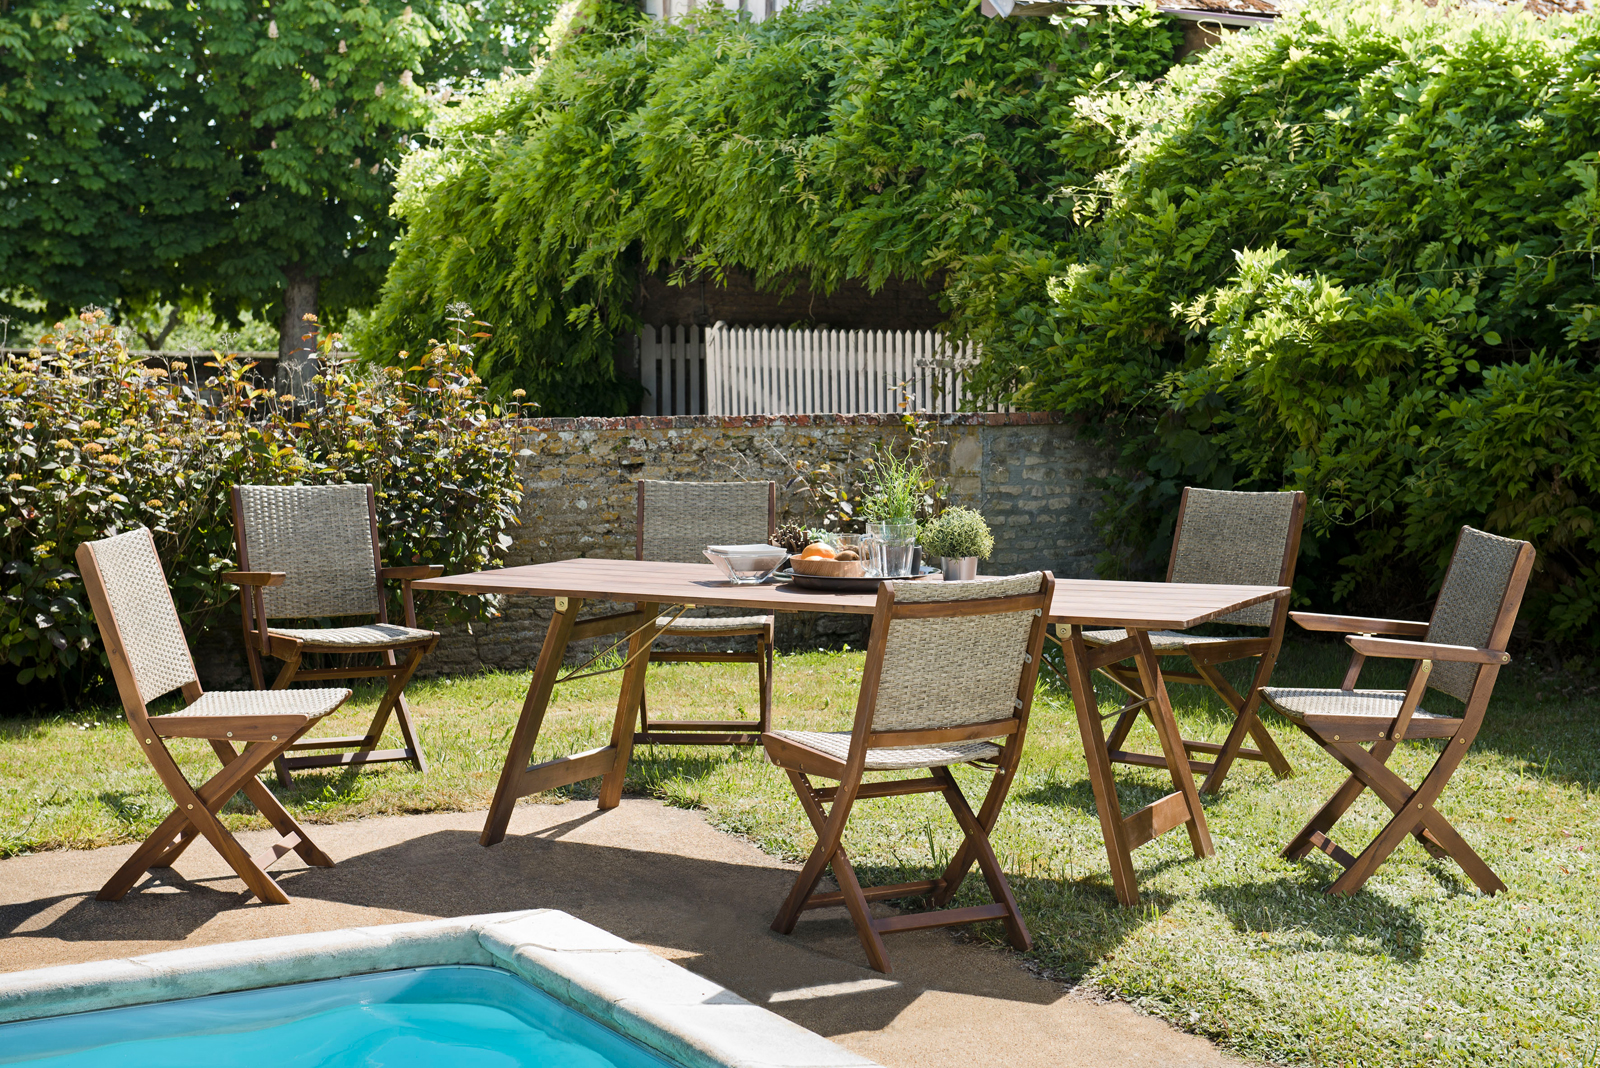 Salon de jardin SUMMER (1 table de jardin pliante acacia ...